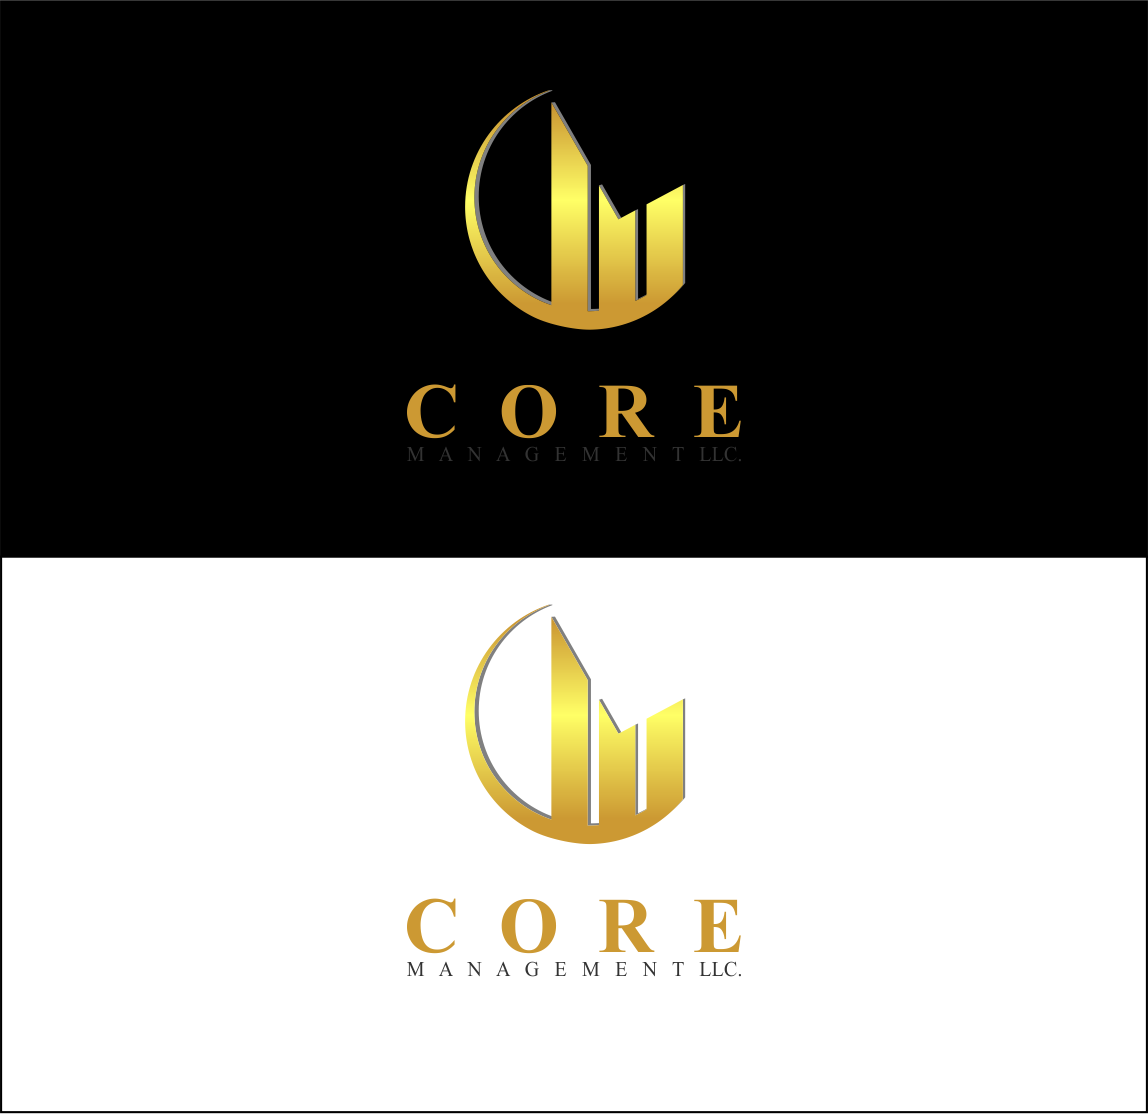 Logo Design by Agus Martoyo - Entry No. 124 in the Logo Design Contest Creative Logo Design for CORE Management, LLC.